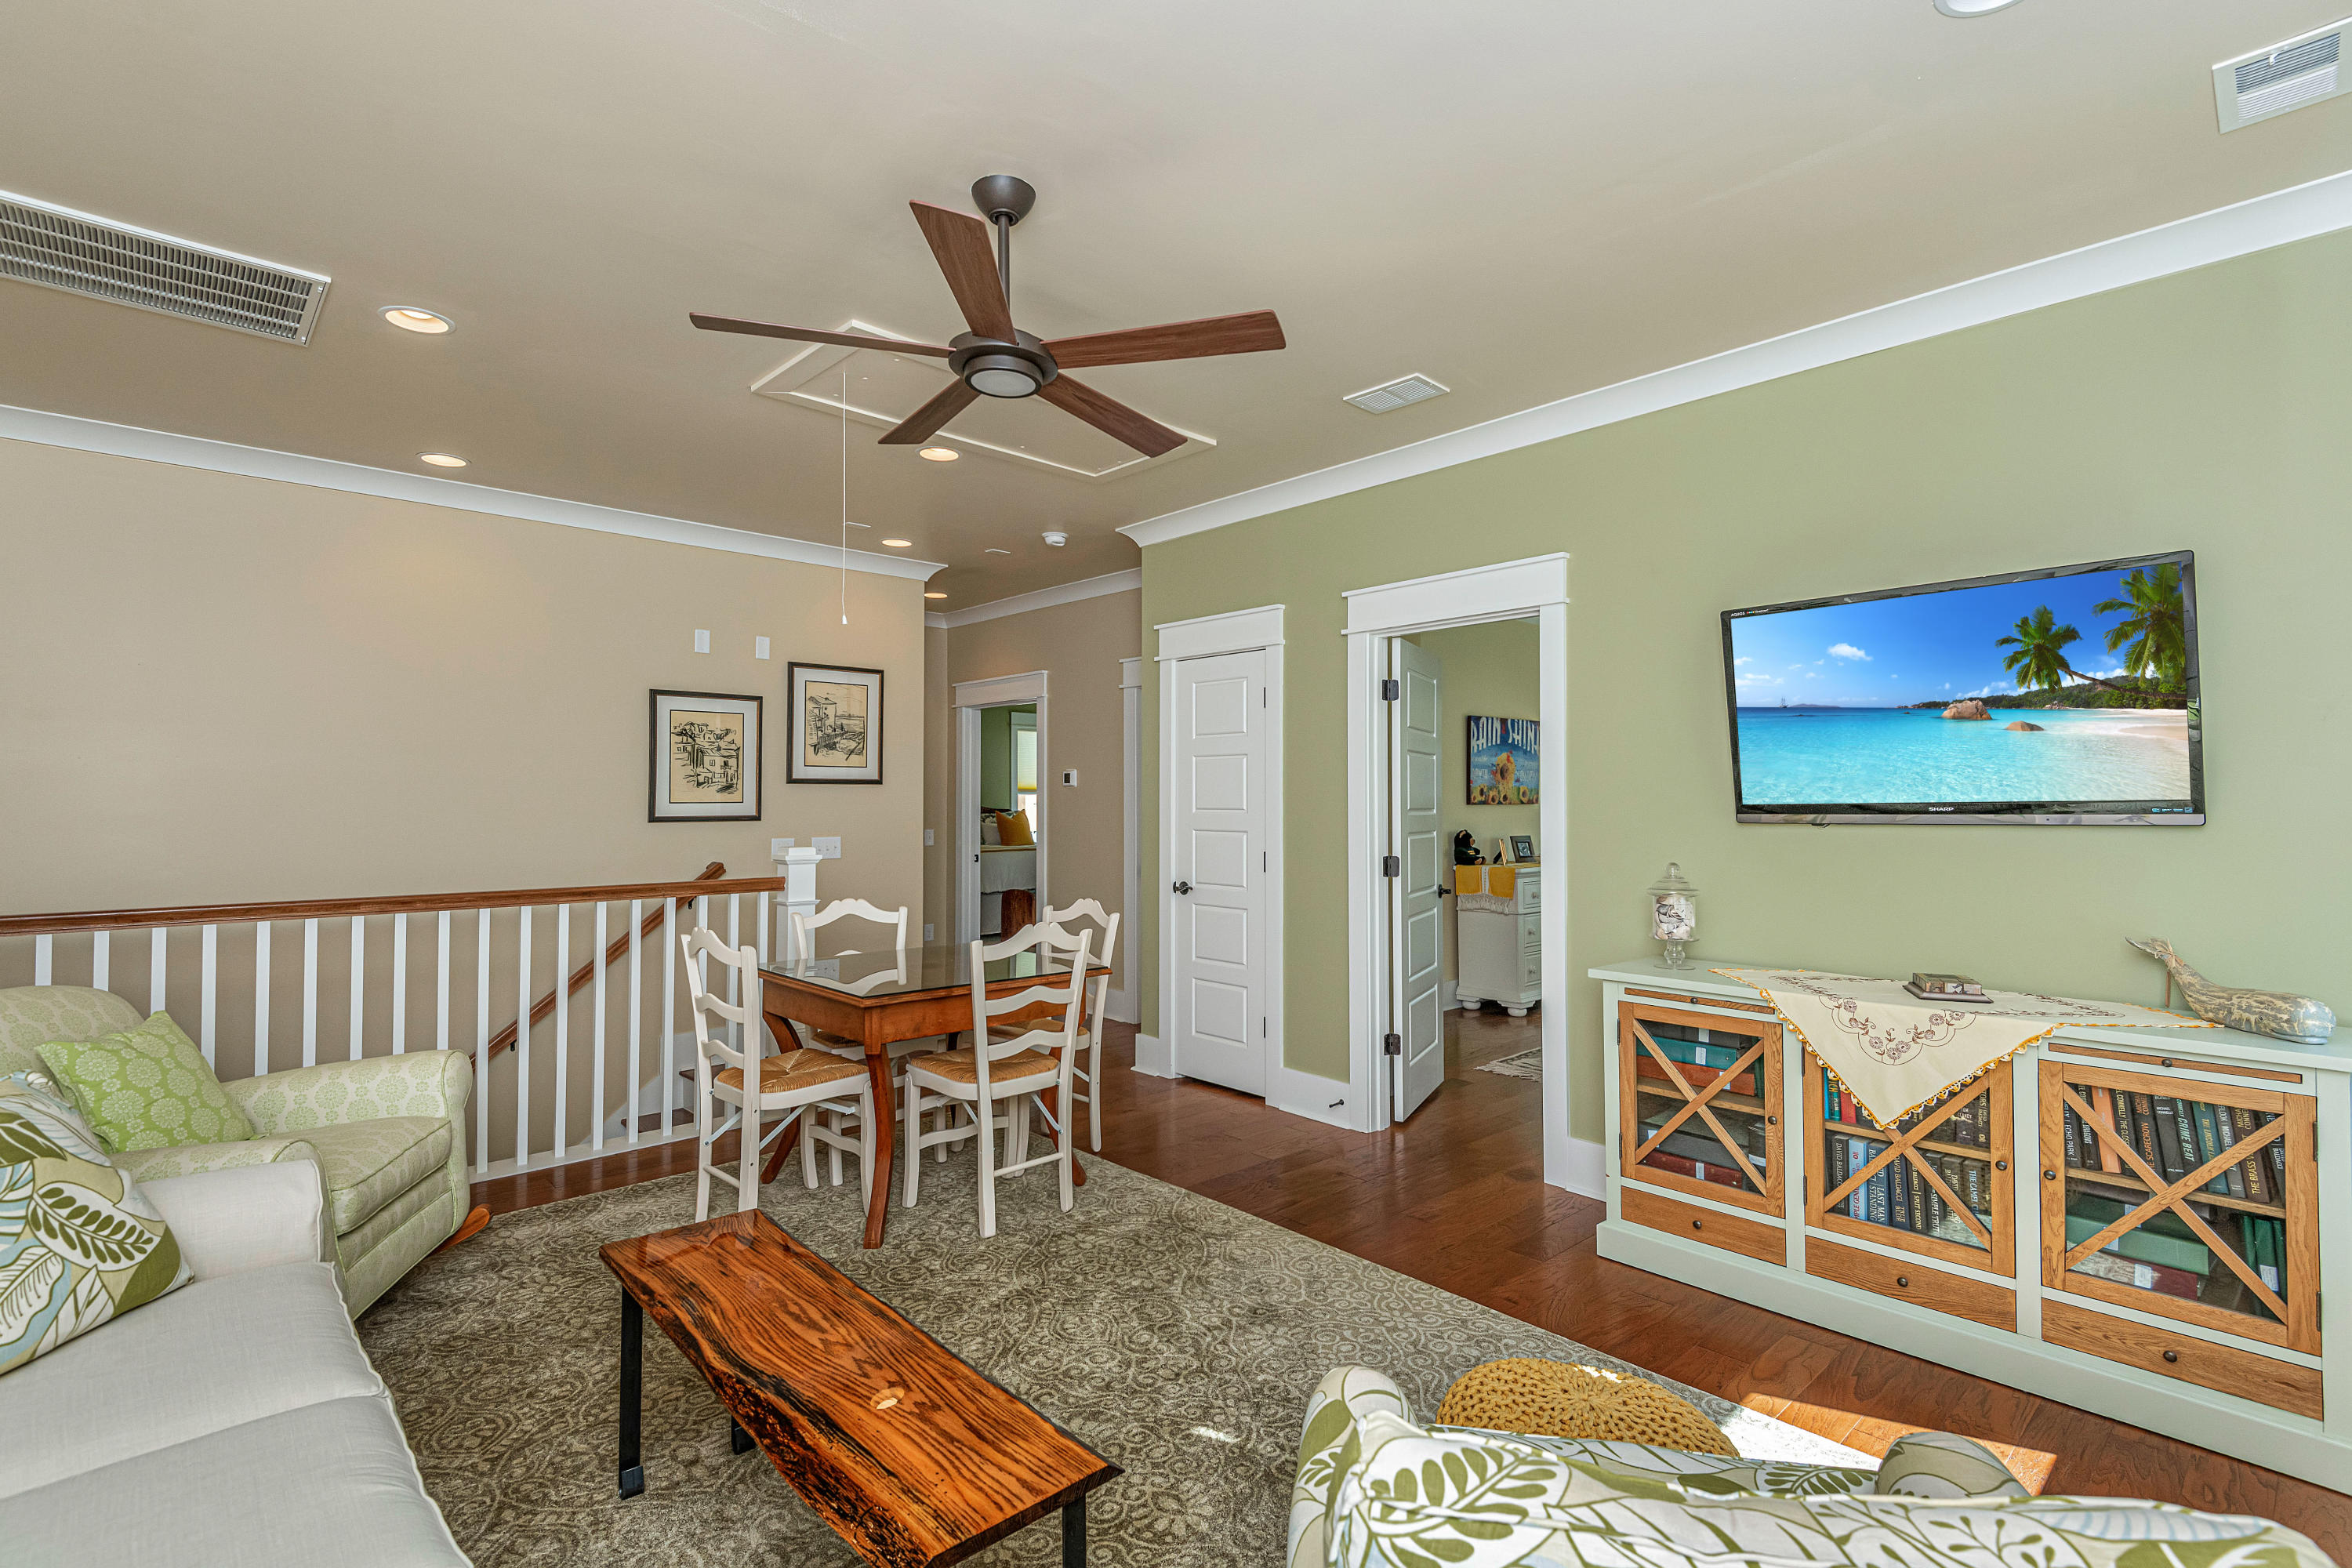 Dunes West Homes For Sale - 2870 Clearwater, Mount Pleasant, SC - 22